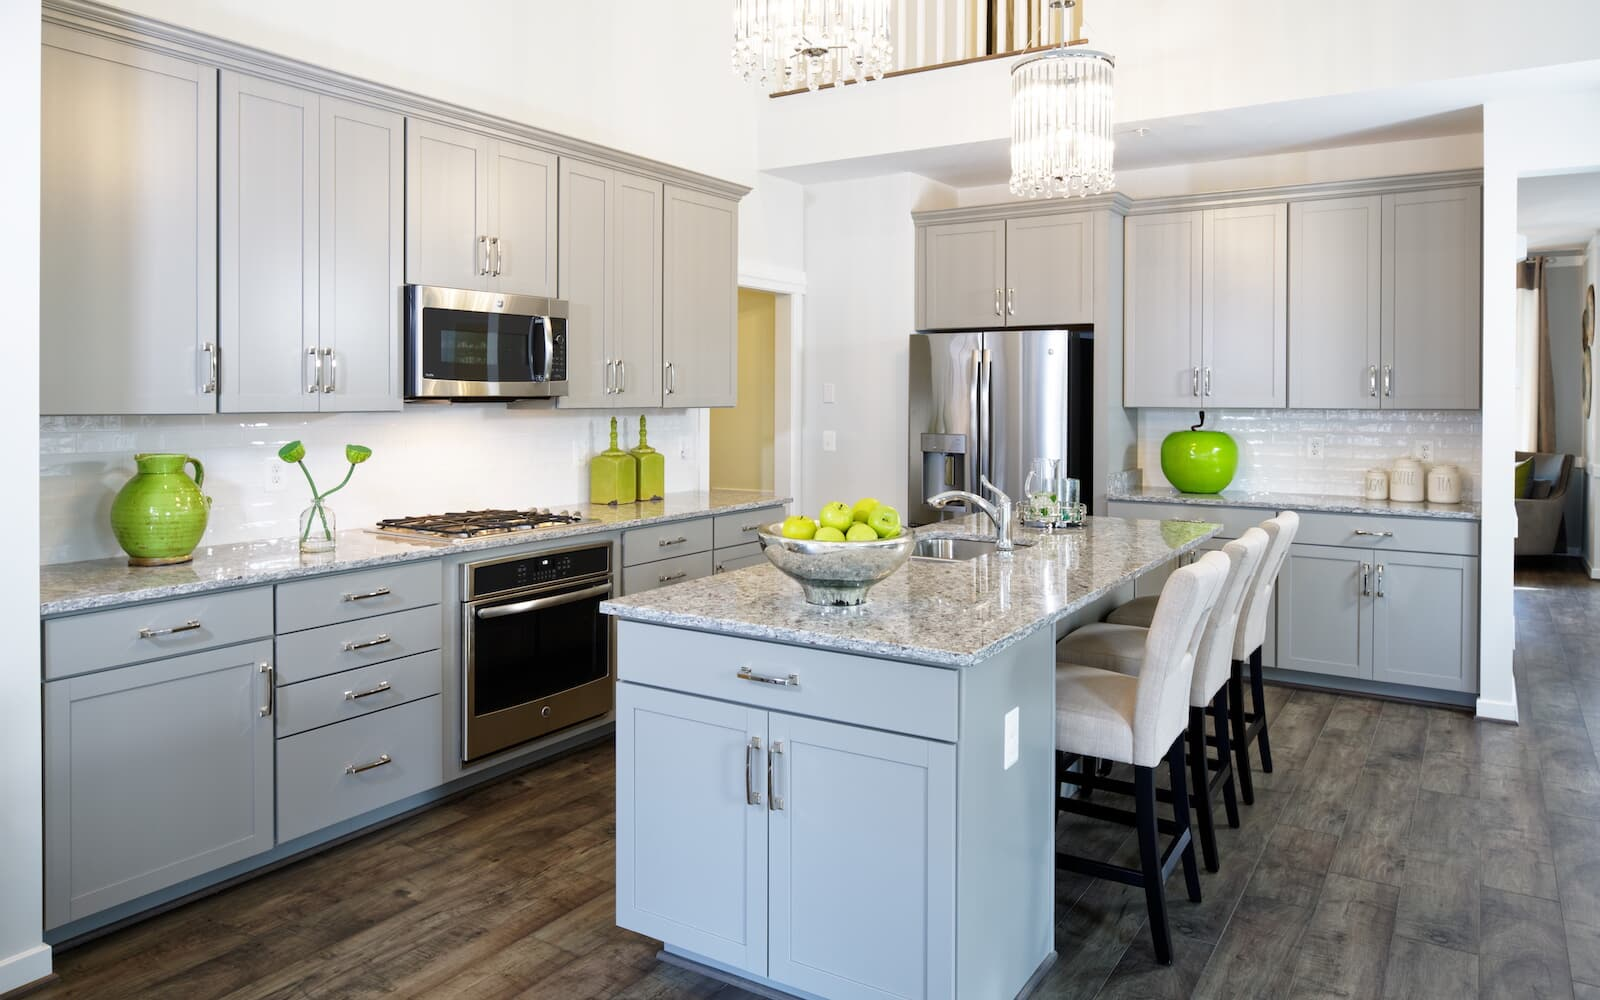 TorringtonII-kitchen-single-family-homes-round-hill-va-the-bluffs-at-sleeter-lake-brookfield-residential